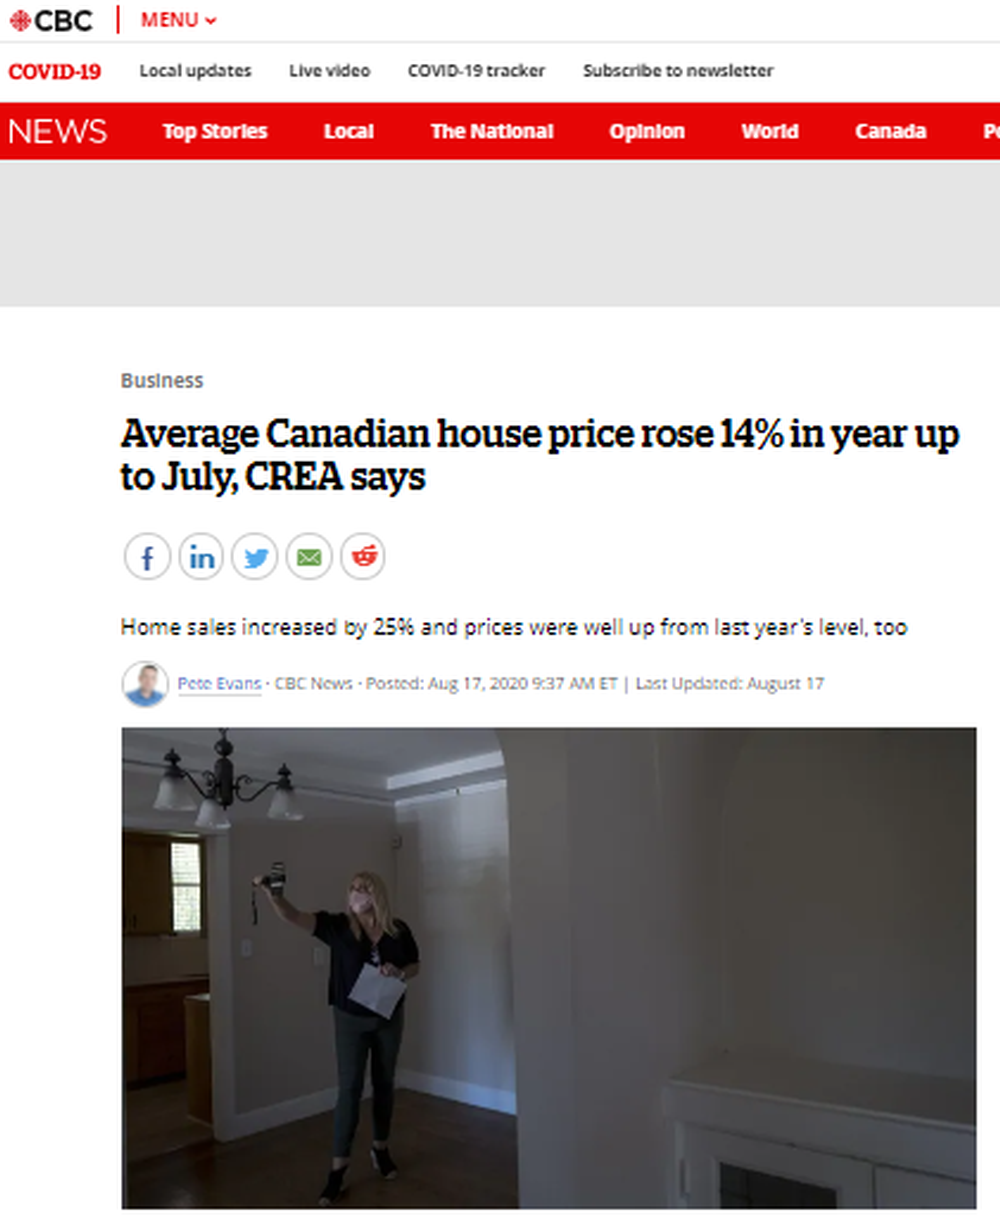 Average Canadian house price rose 14% in year up to July, CREA says